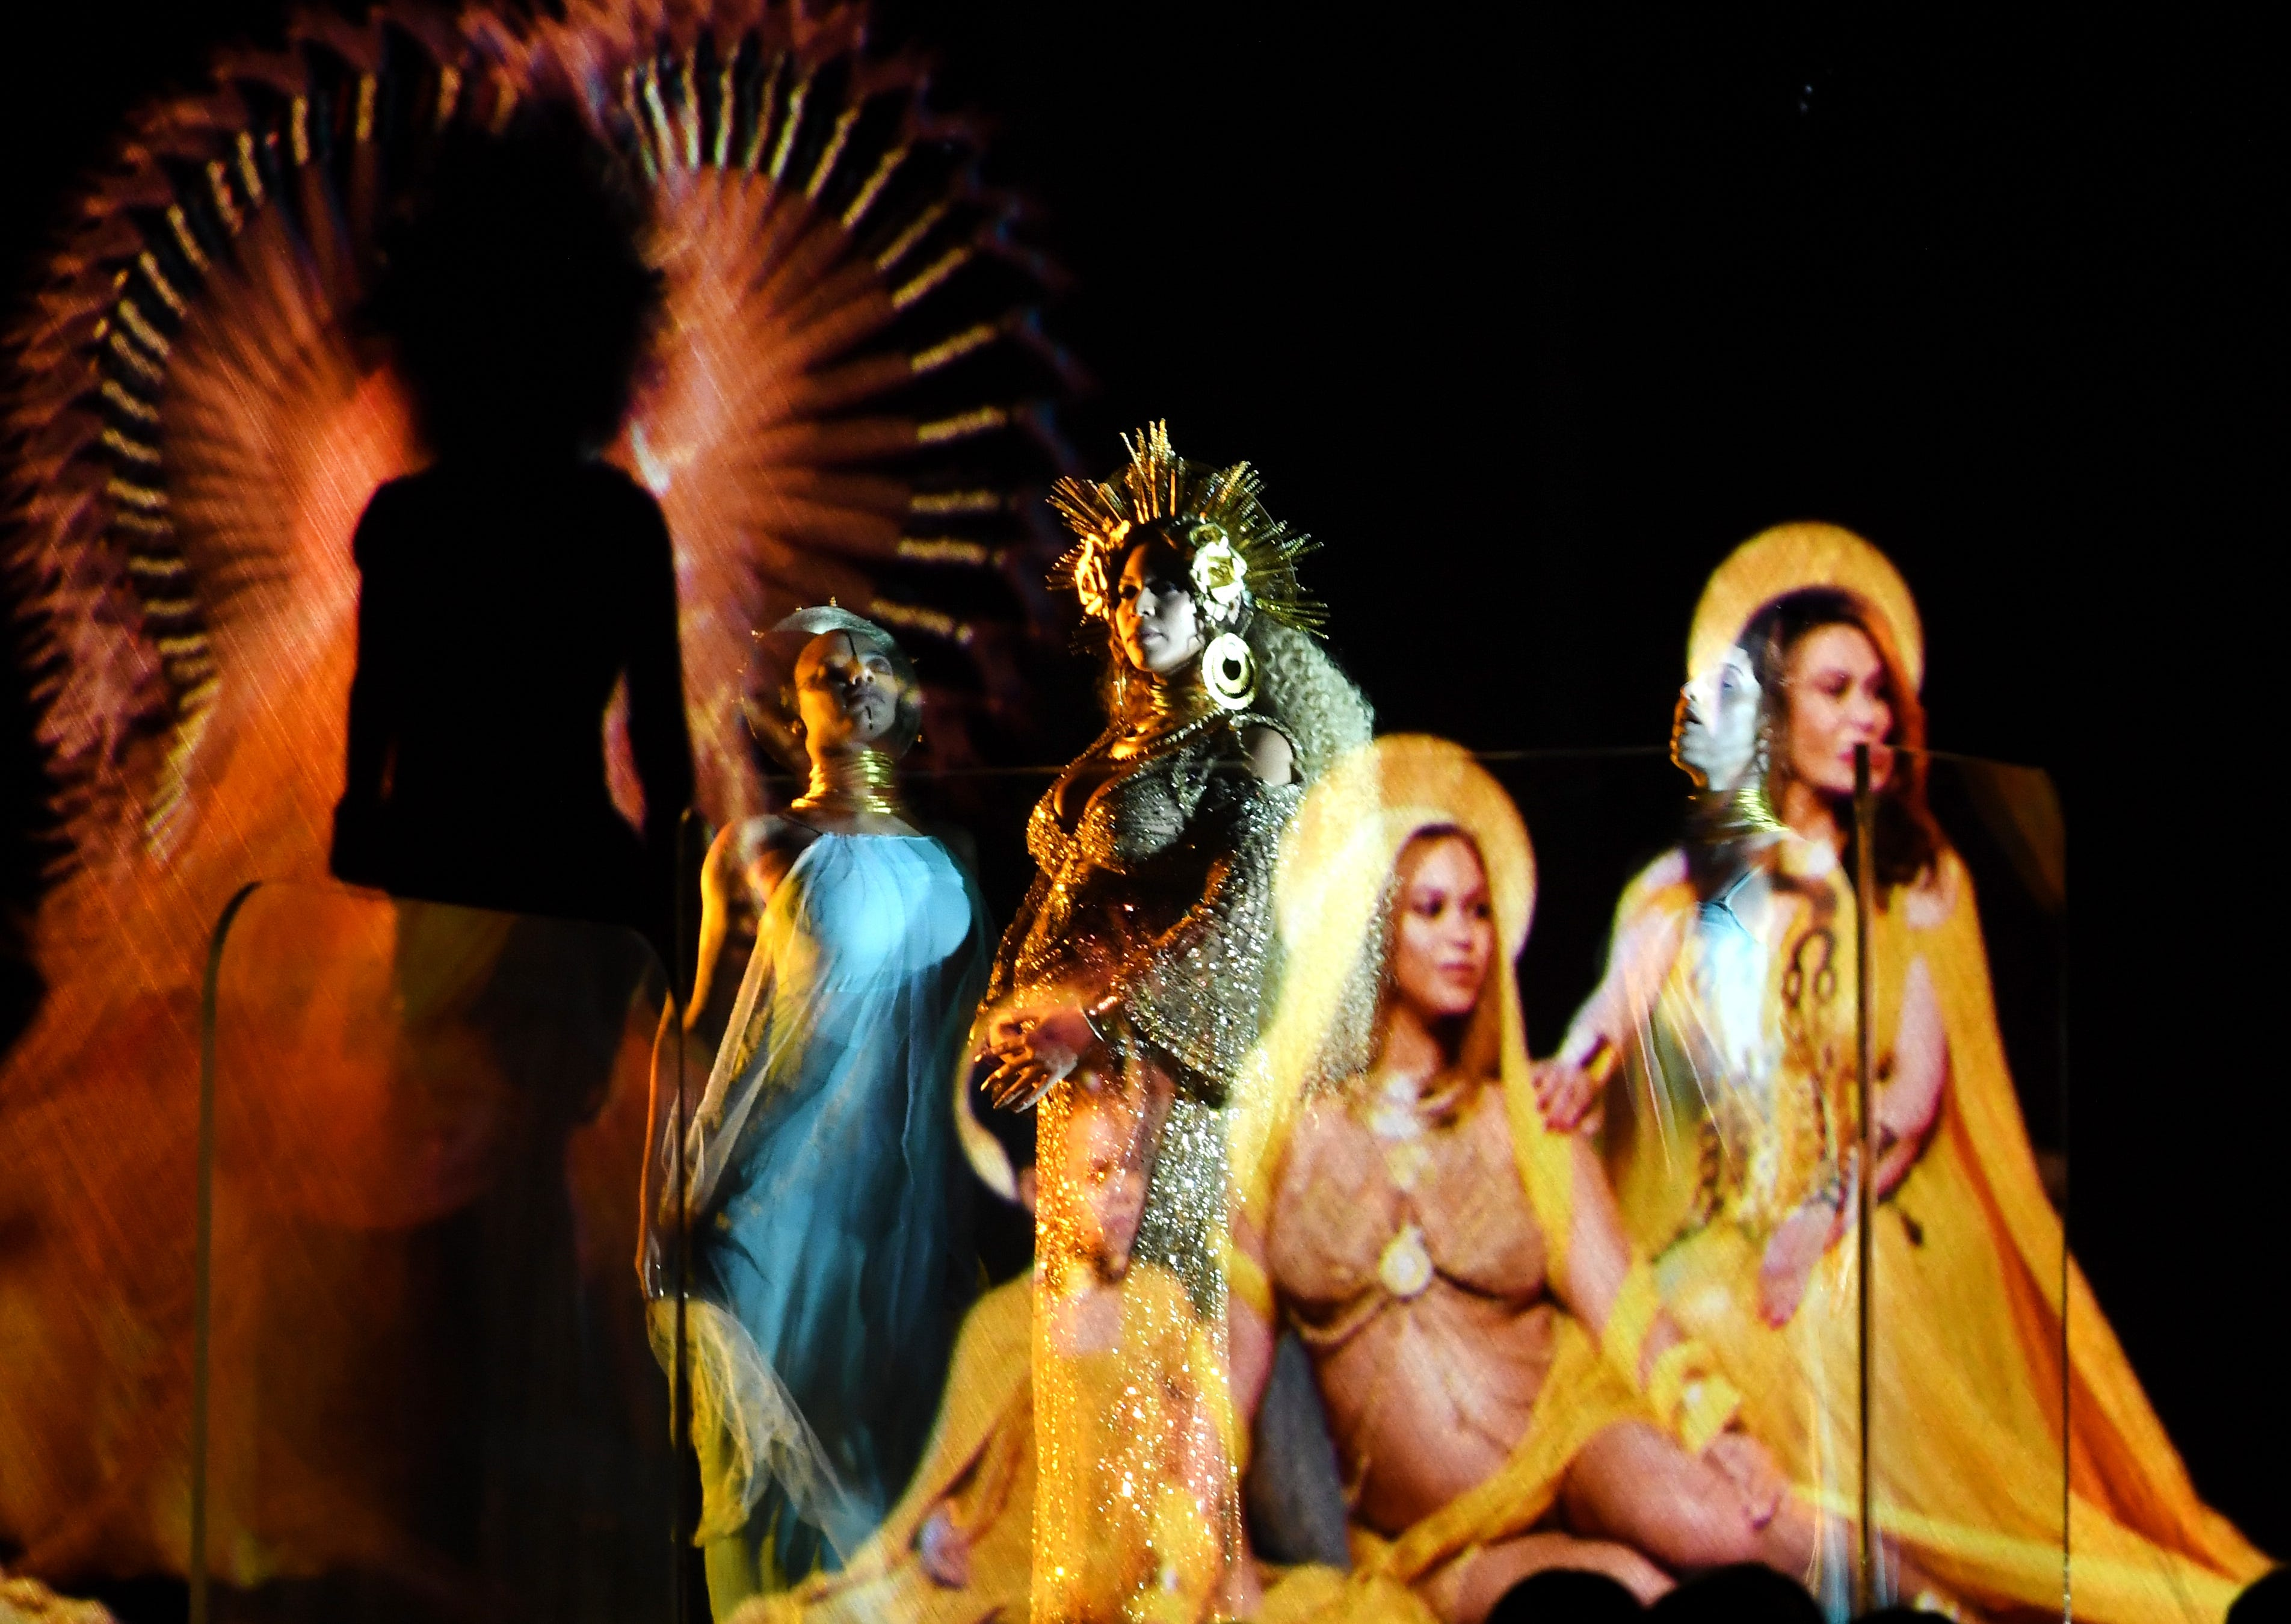 Beyonce grammys performance meaning religious symbolism biocorpaavc Choice Image